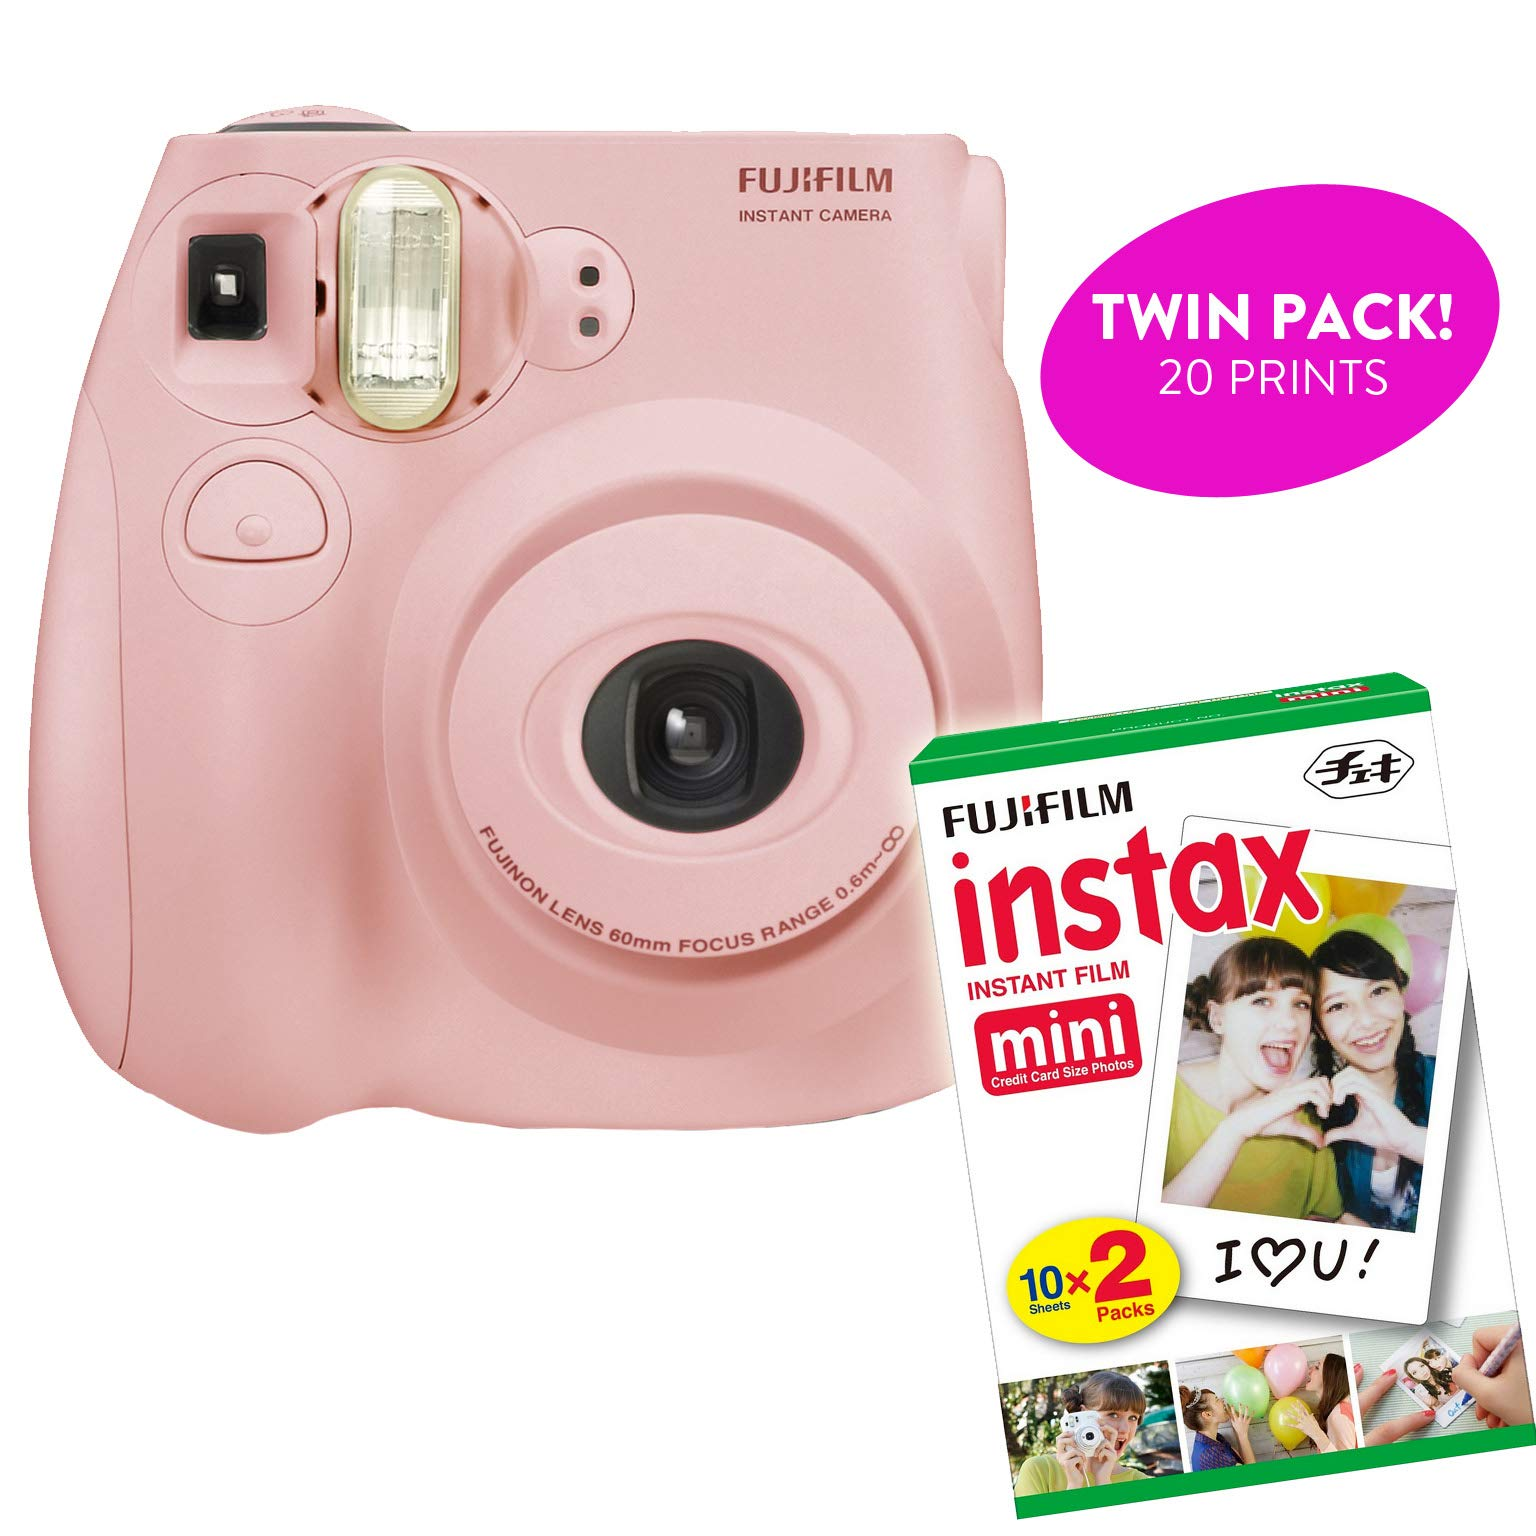 Fujifilm Instax Mini 7S Instant Print Camera (Renewed) Plus Twin Pack of Film Starter Bundle | 10 Sheets x 2 = 20 White Frame Instant Exposure Photograph Sheets (Light Pink) by Certified Amazing